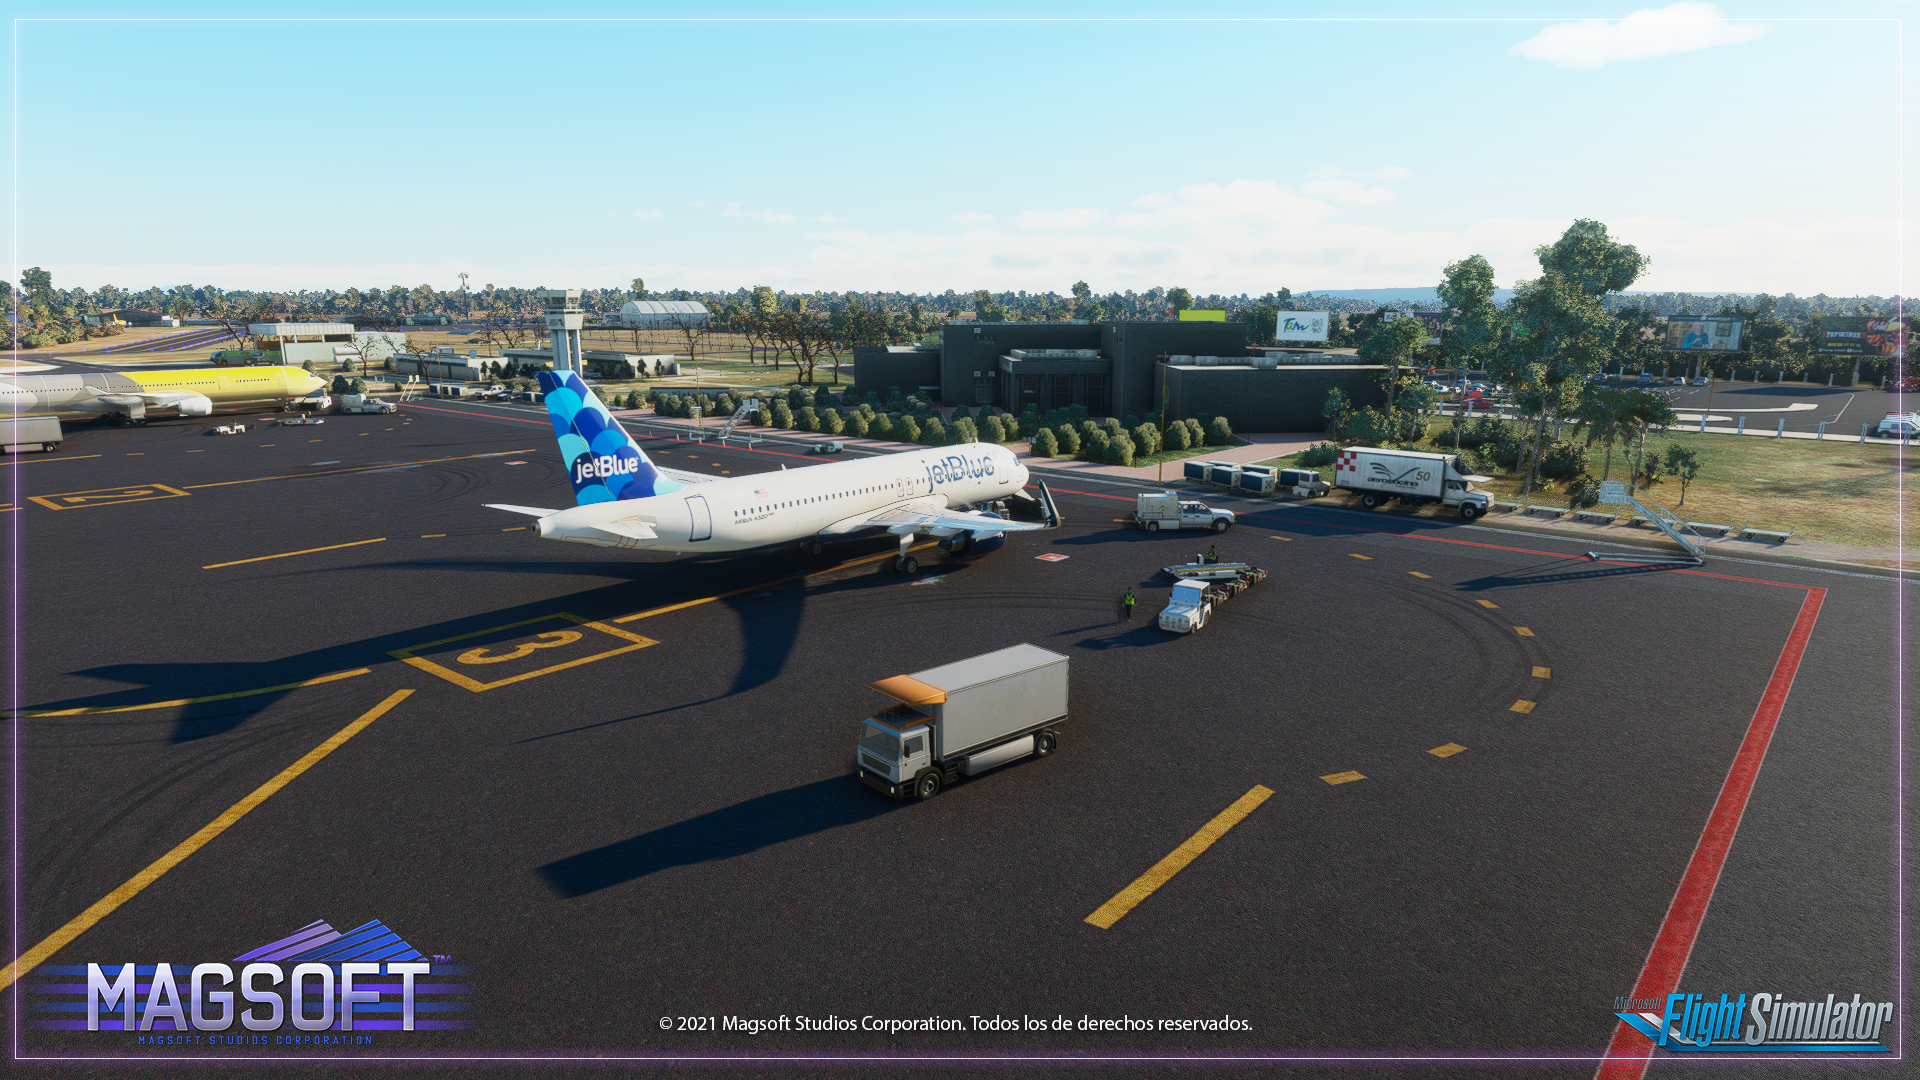 MAGMEXICO - GENERAL PEDRO JOSE MENDEZ INTERNATIONAL AIRPORT MSFS